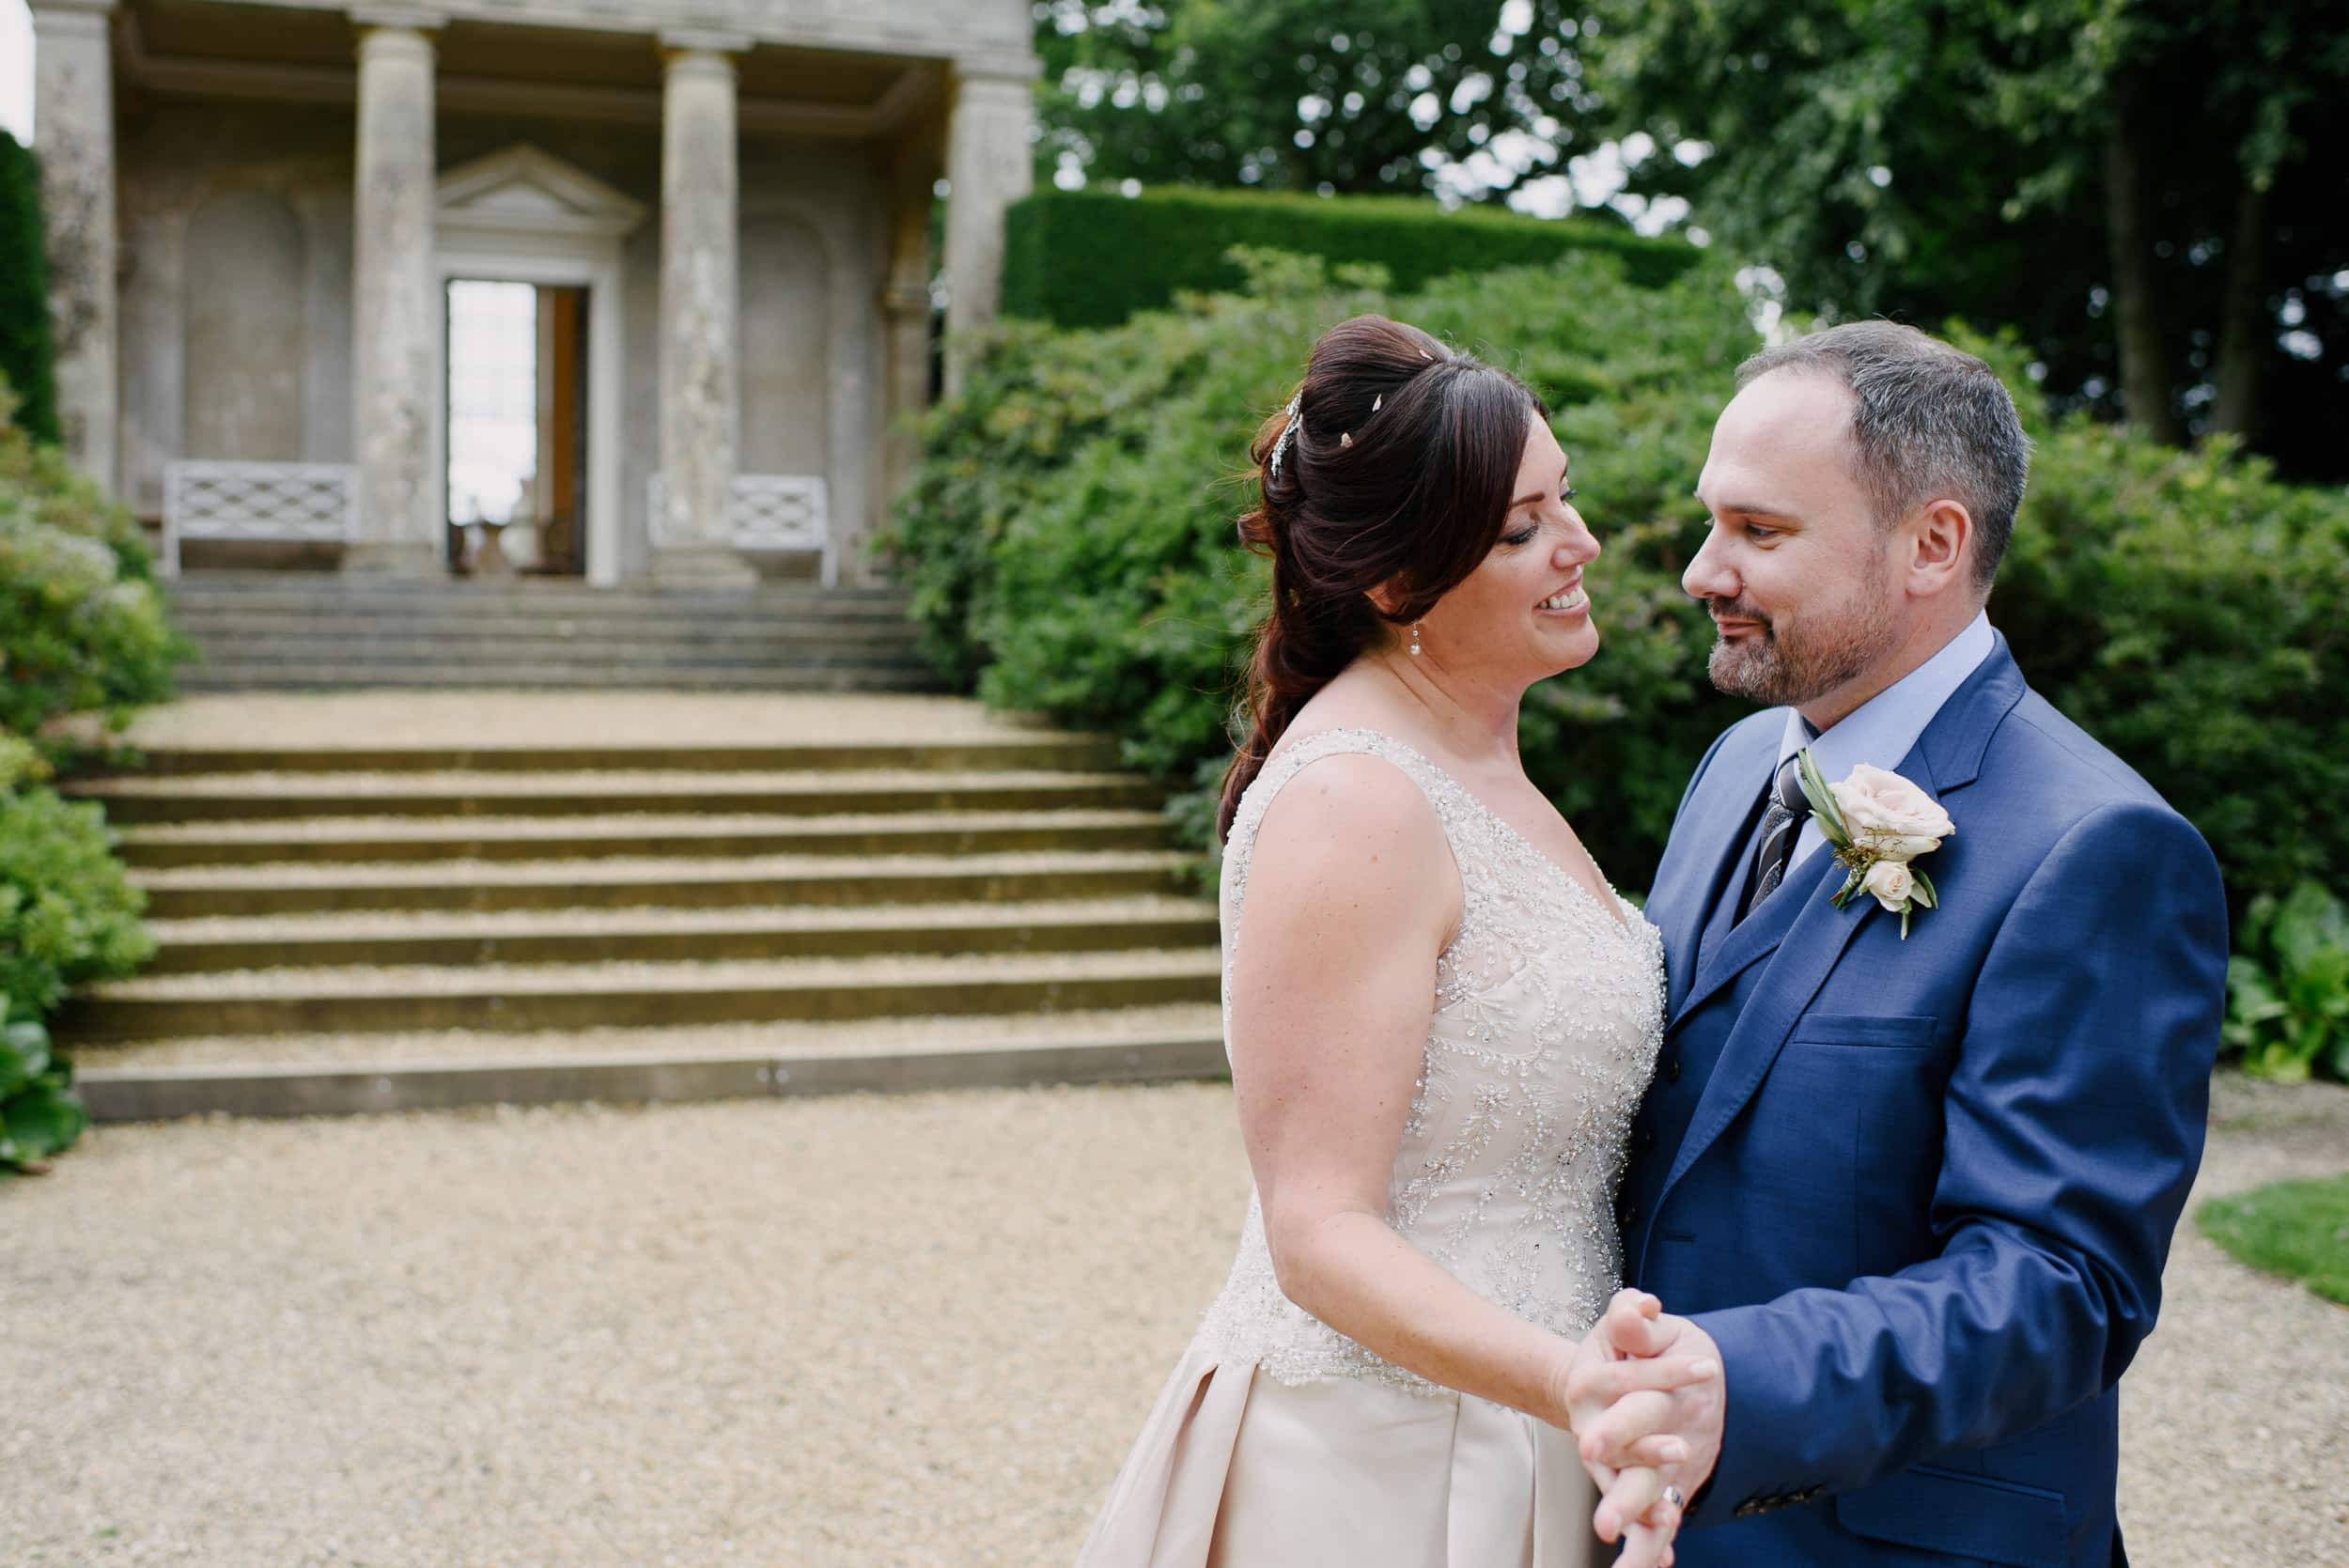 Suzy & Mike - Blickling Hall Wedding 21